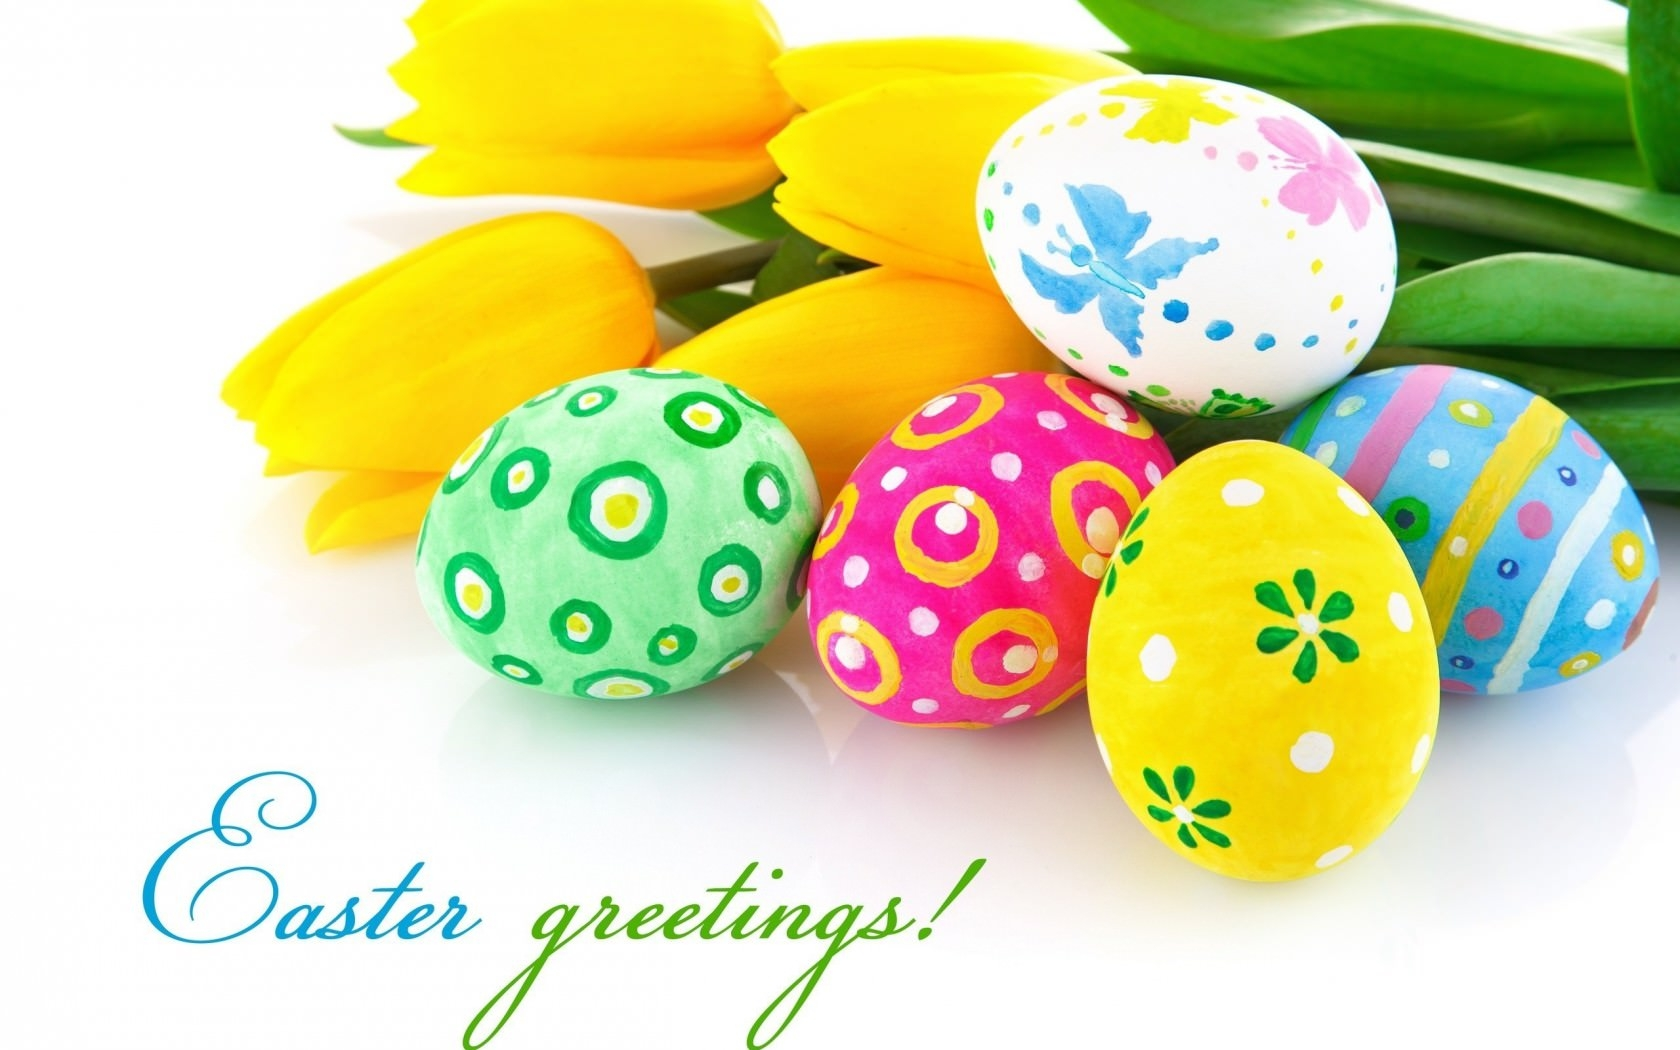 Happy-Easter-37-Wallpaper-HD